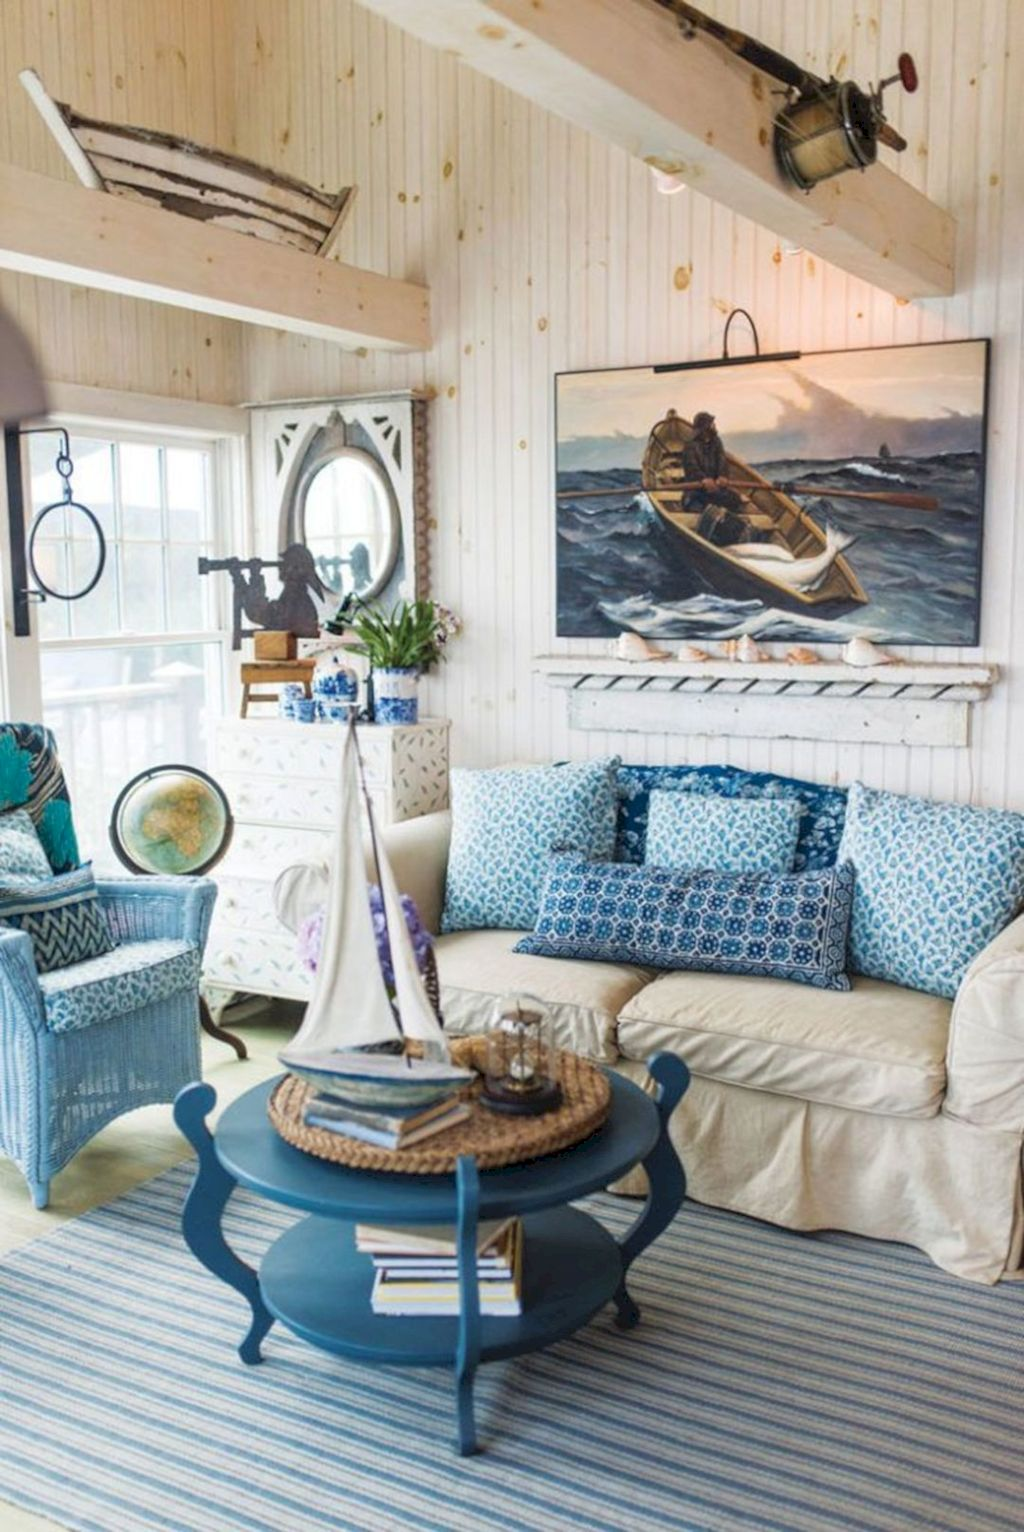 Minimalist living room update inspired by cottage living area showing a natural characteristic of beach style home Image 45